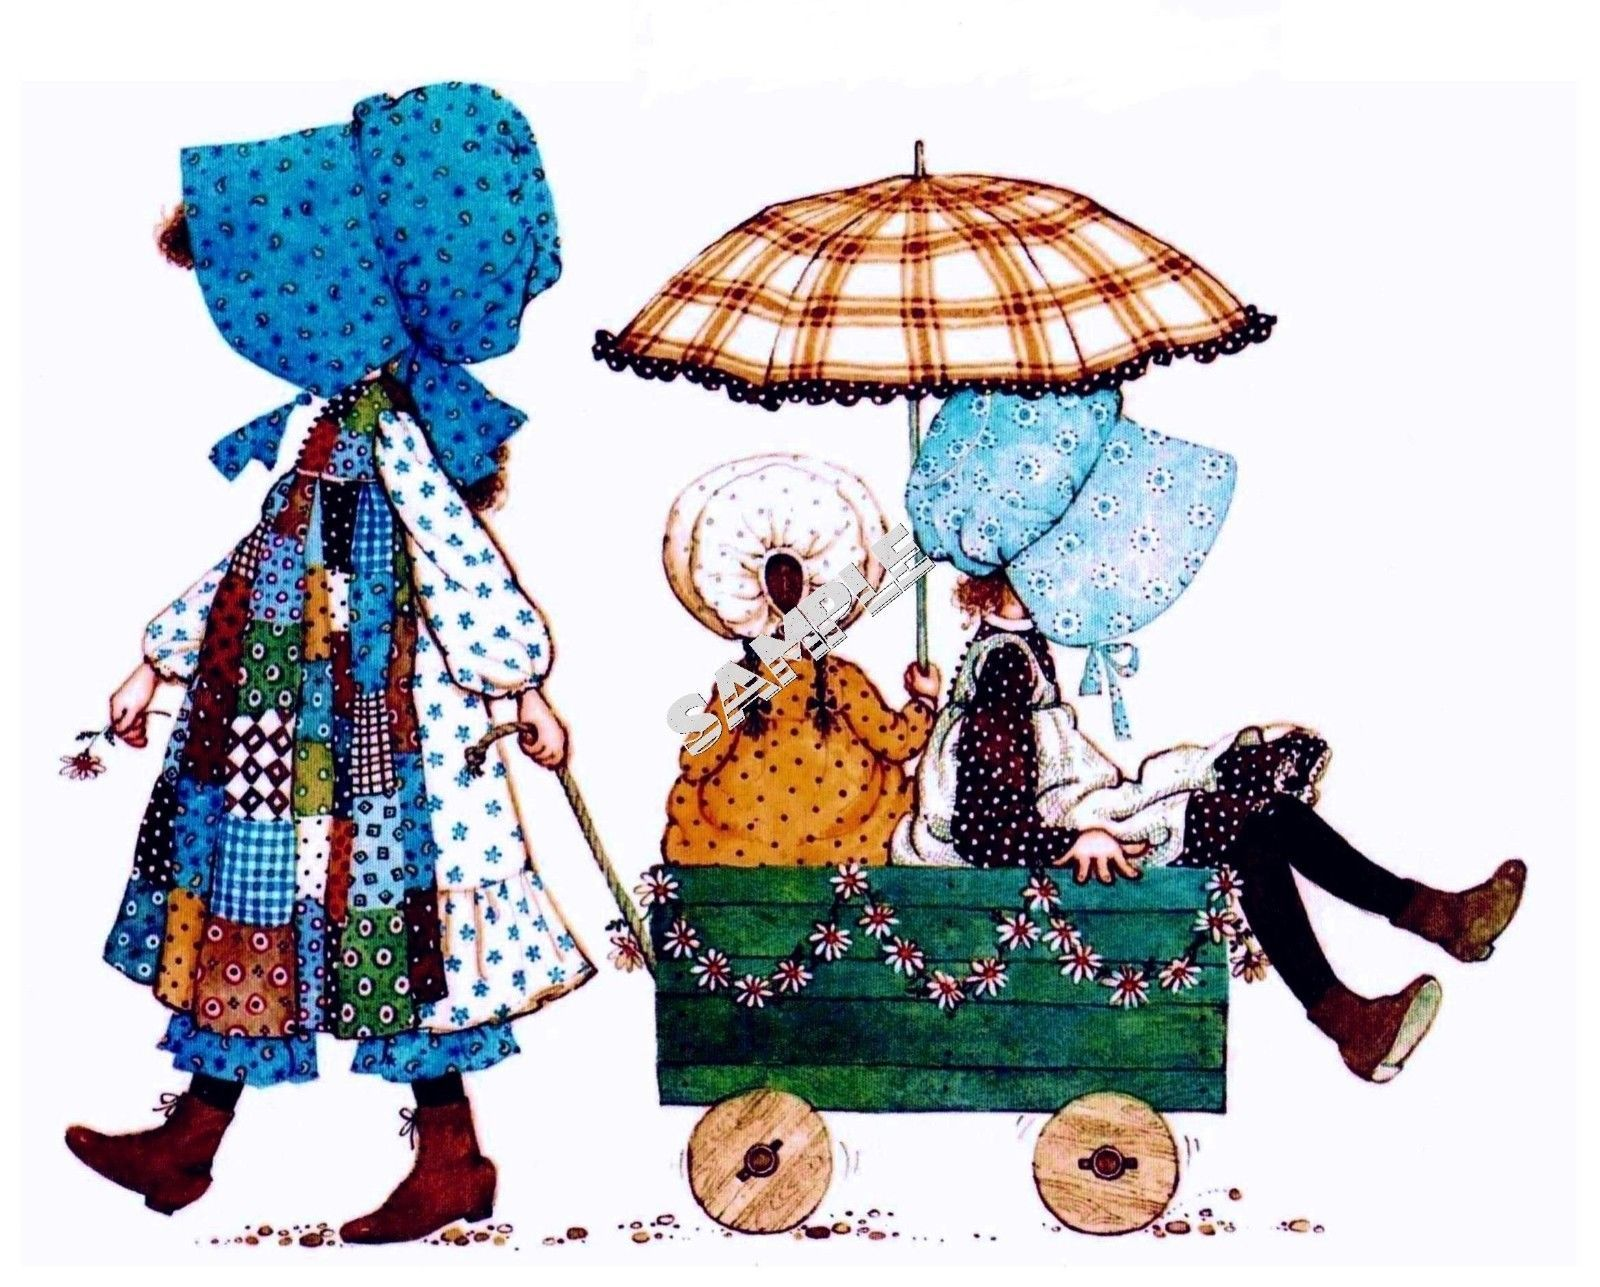 Holly Hobbie pulling her friends in a wagon.